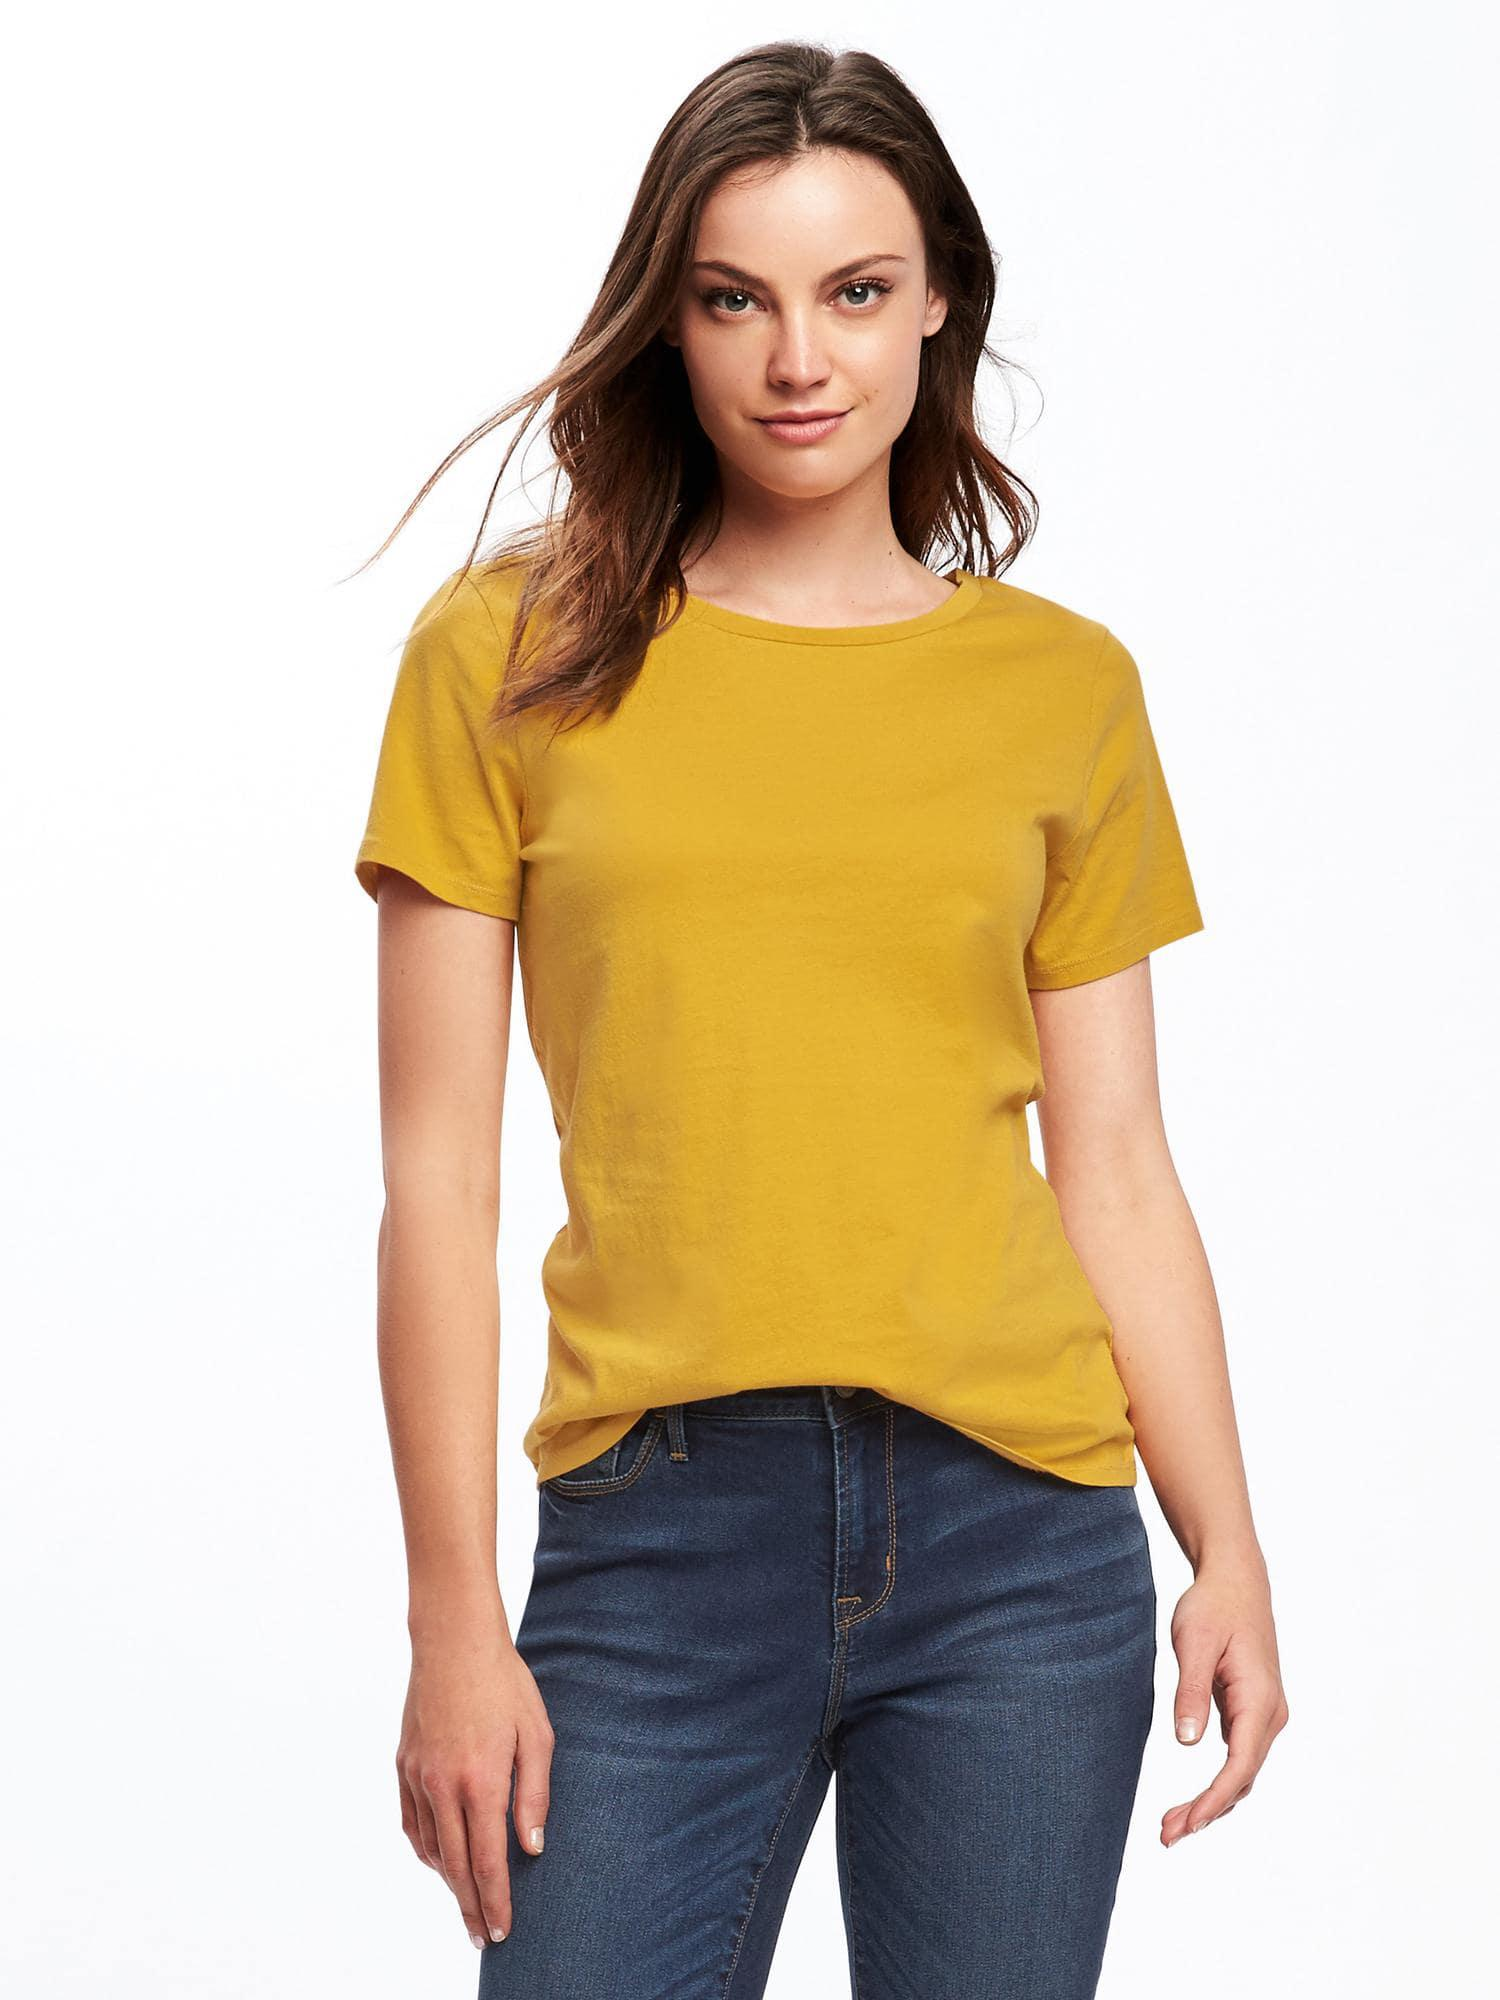 ada86847e Lyst - Old Navy Everywear Crew-neck Tee in Yellow